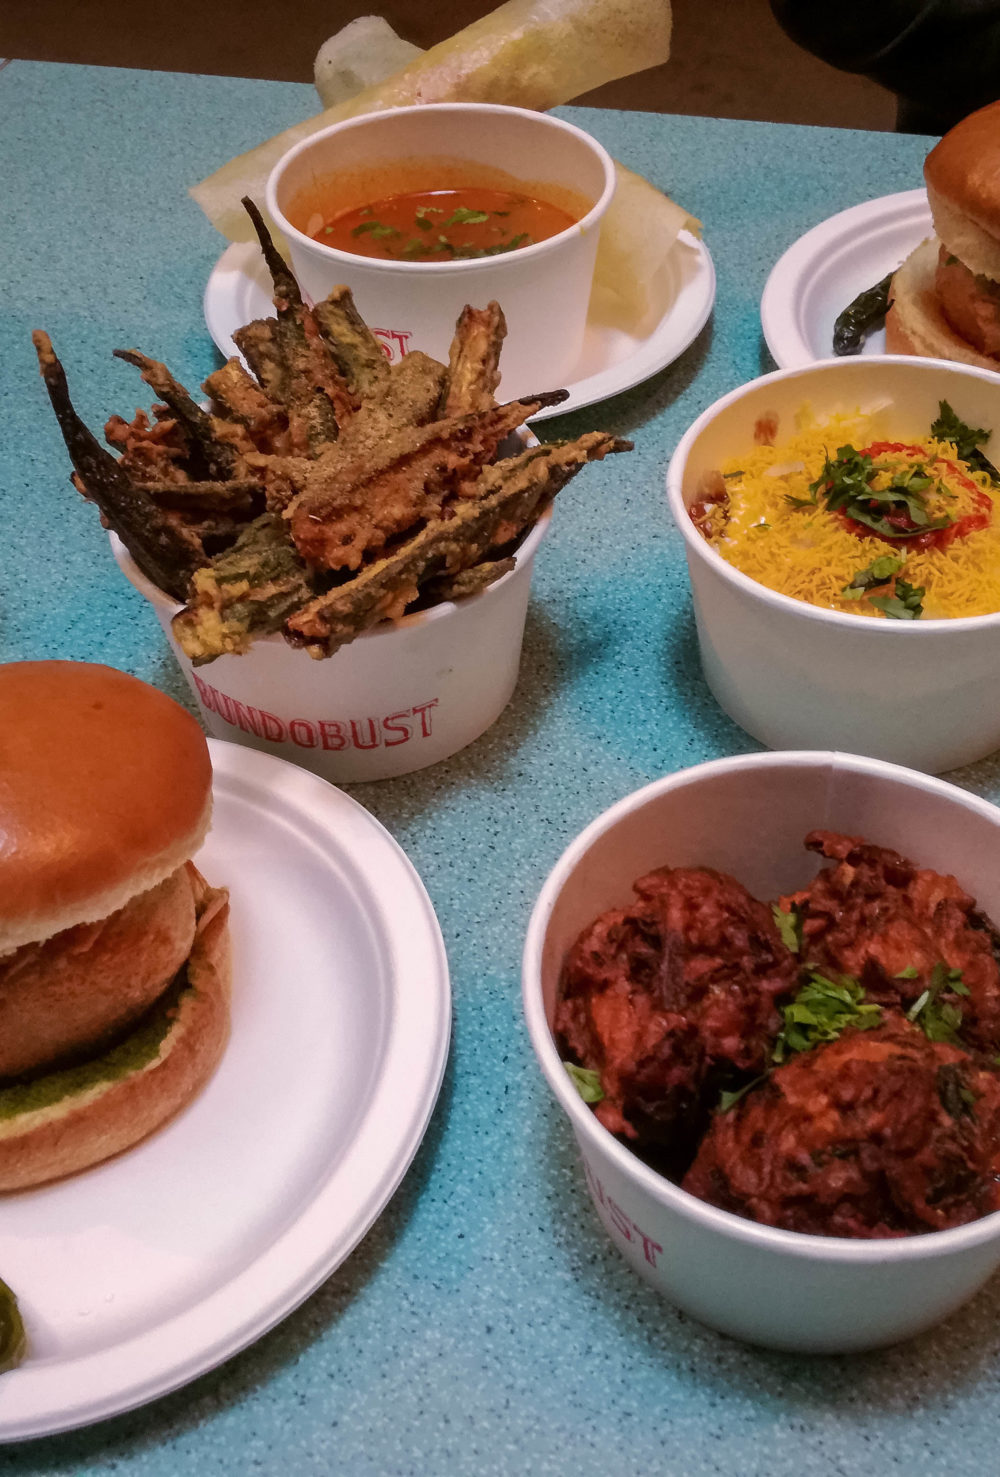 Bundobust - West Yorkshire - Zomato